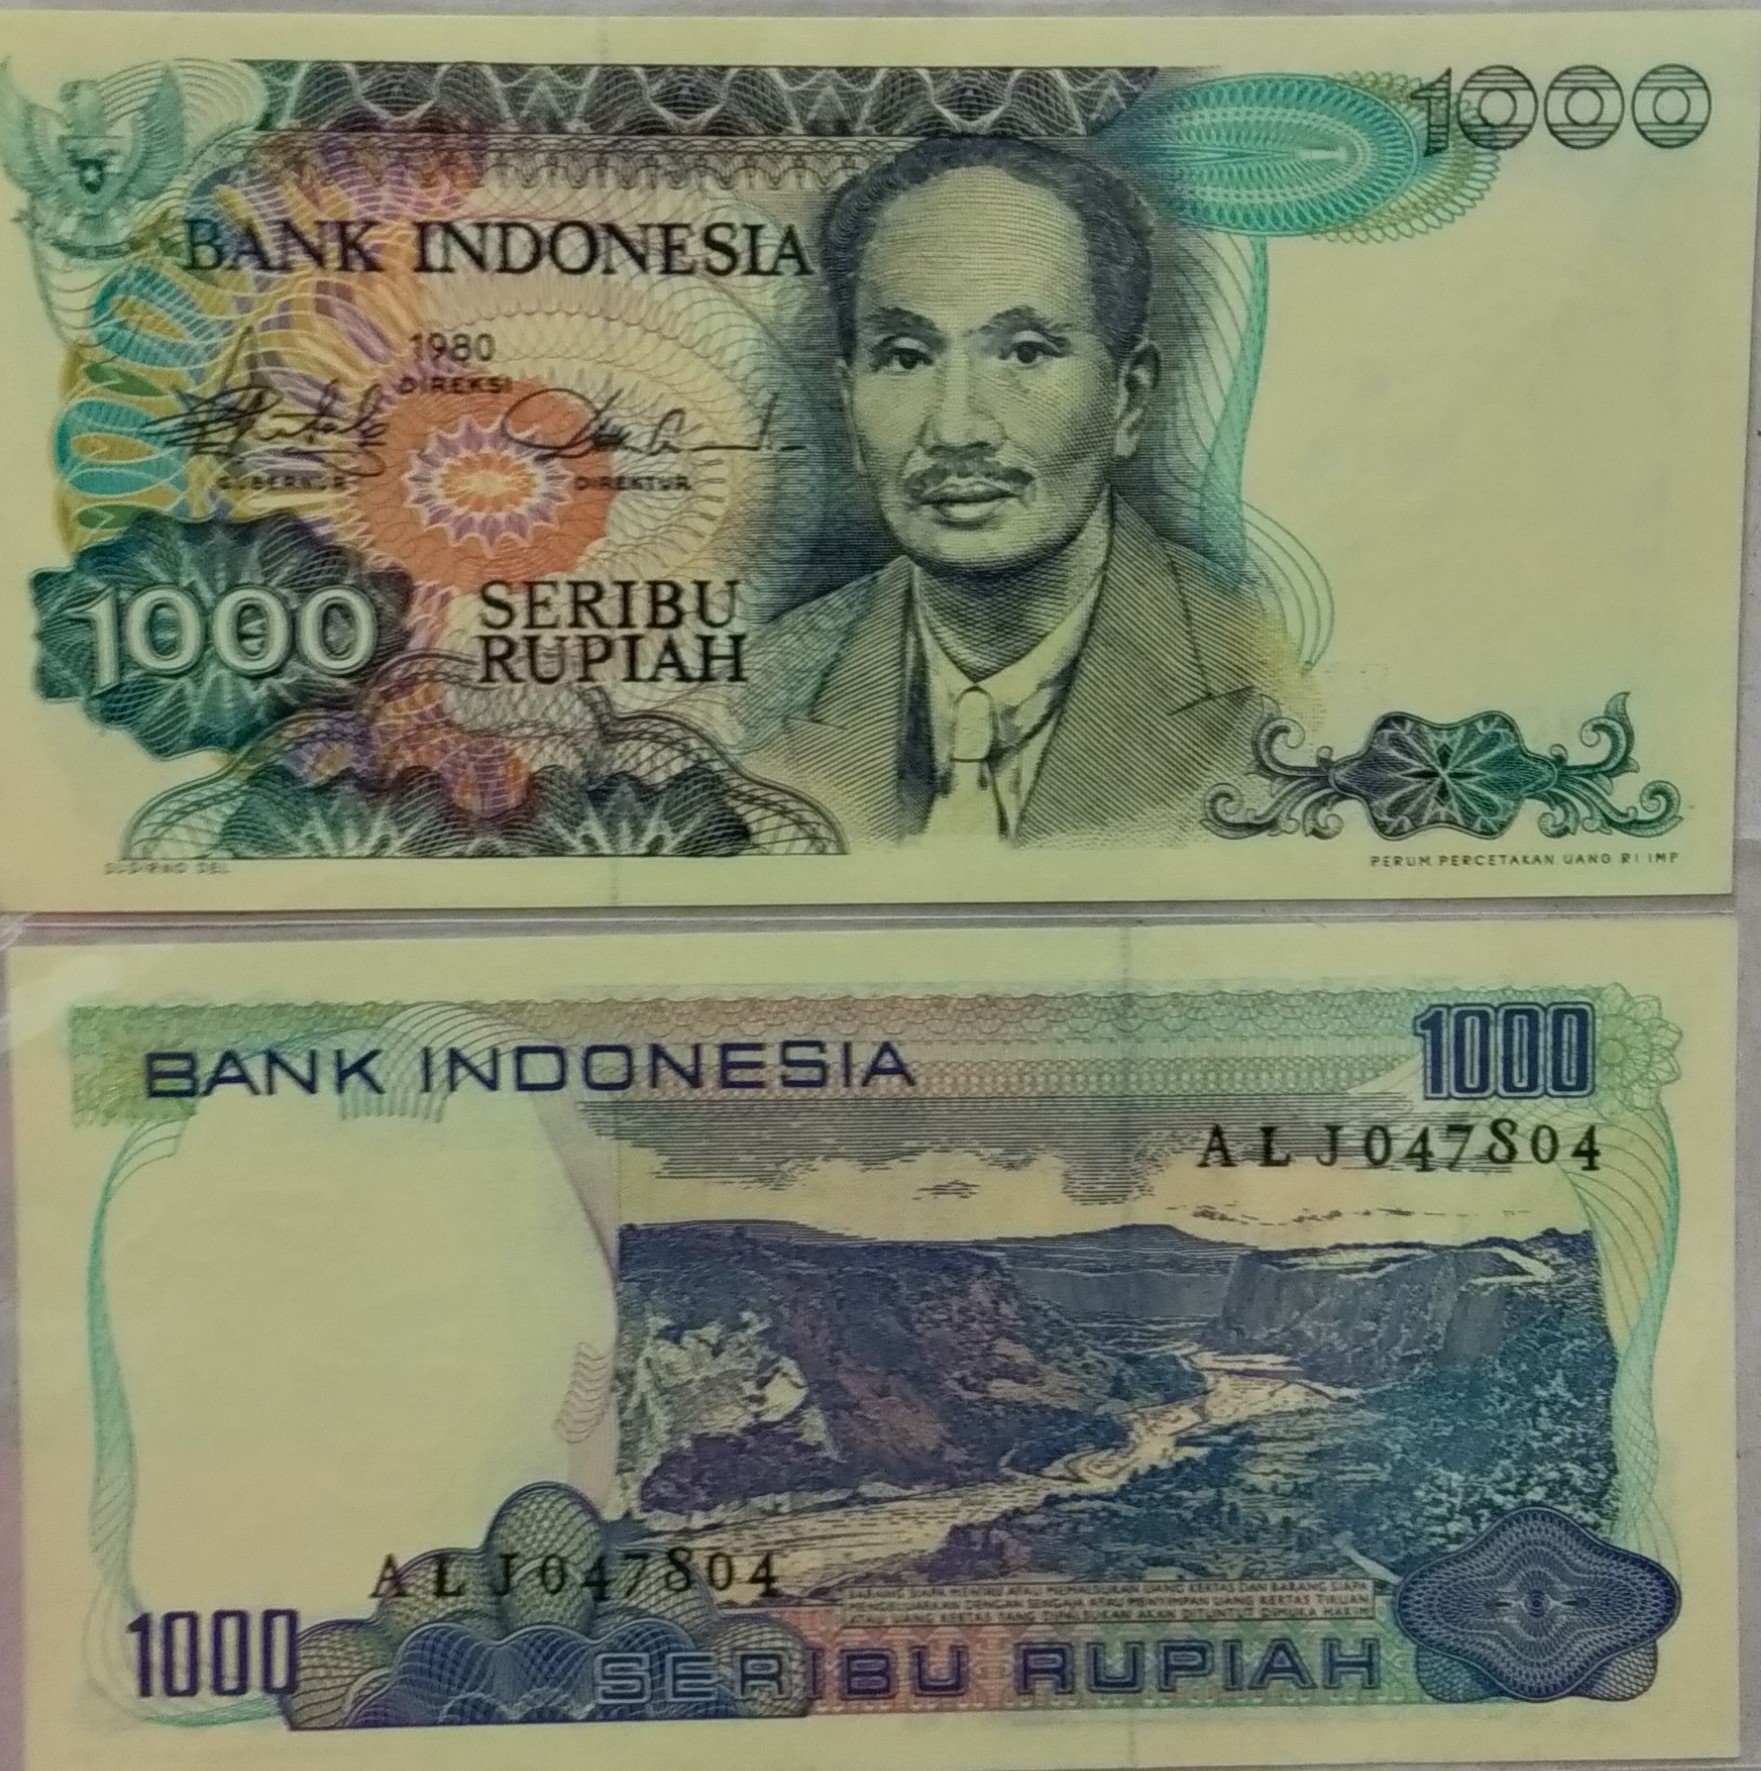 Indonesia 1000 rupiah 1980 banknote for sale